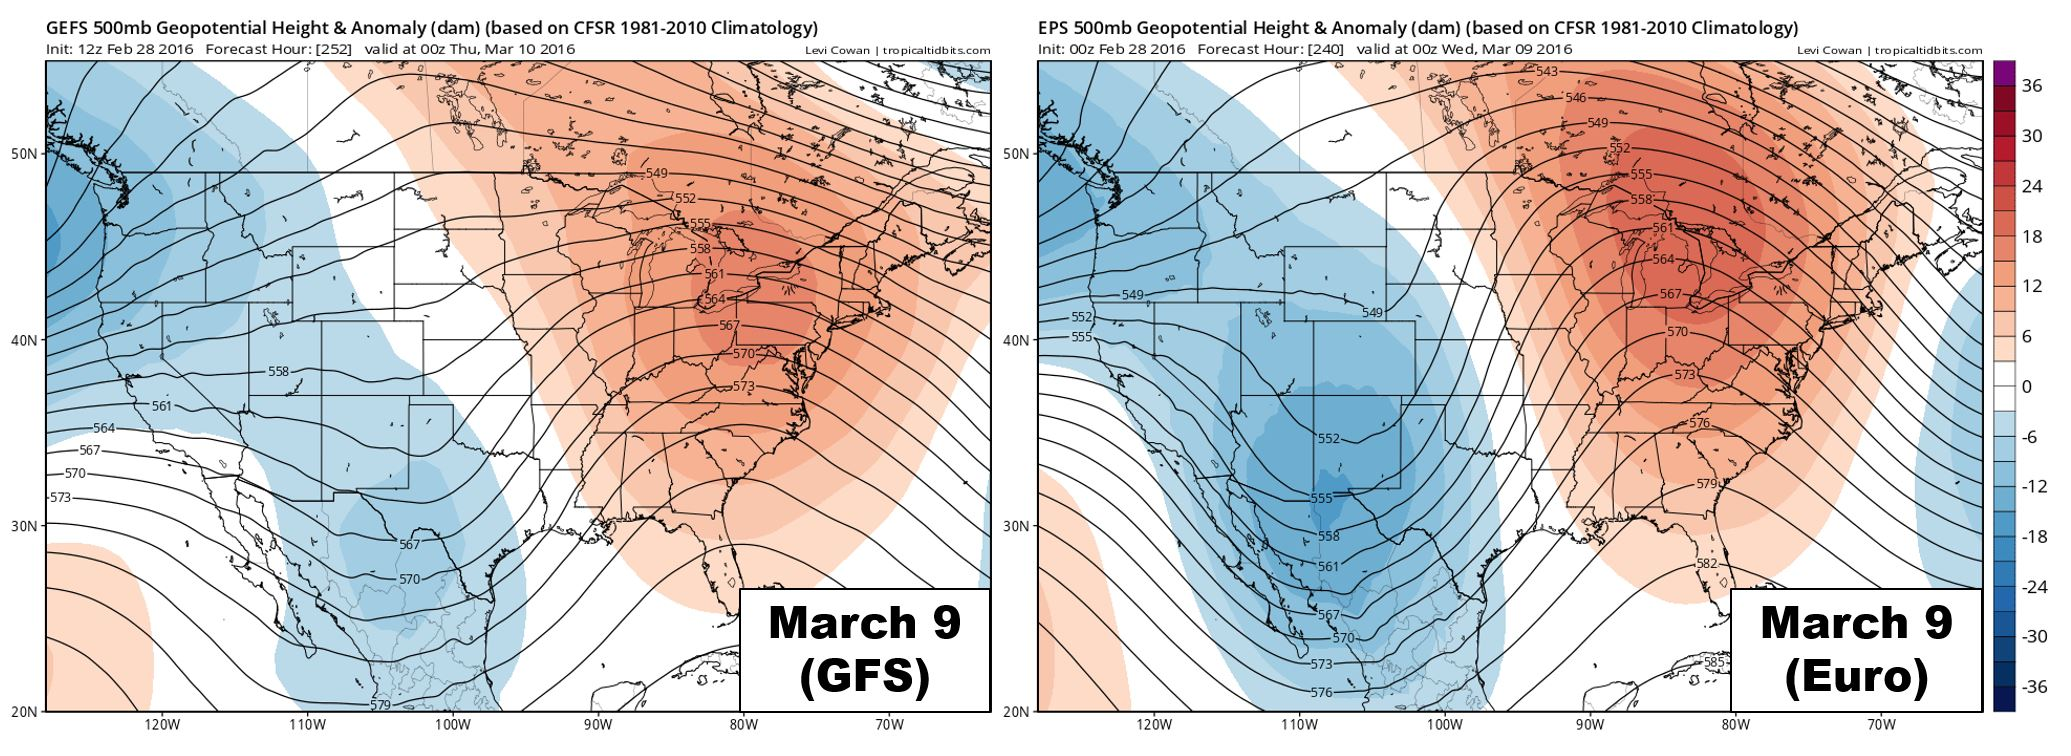 Ensemble 500mb height forecasts for March 9, 2016 from the GFS (left) and Euro (right).